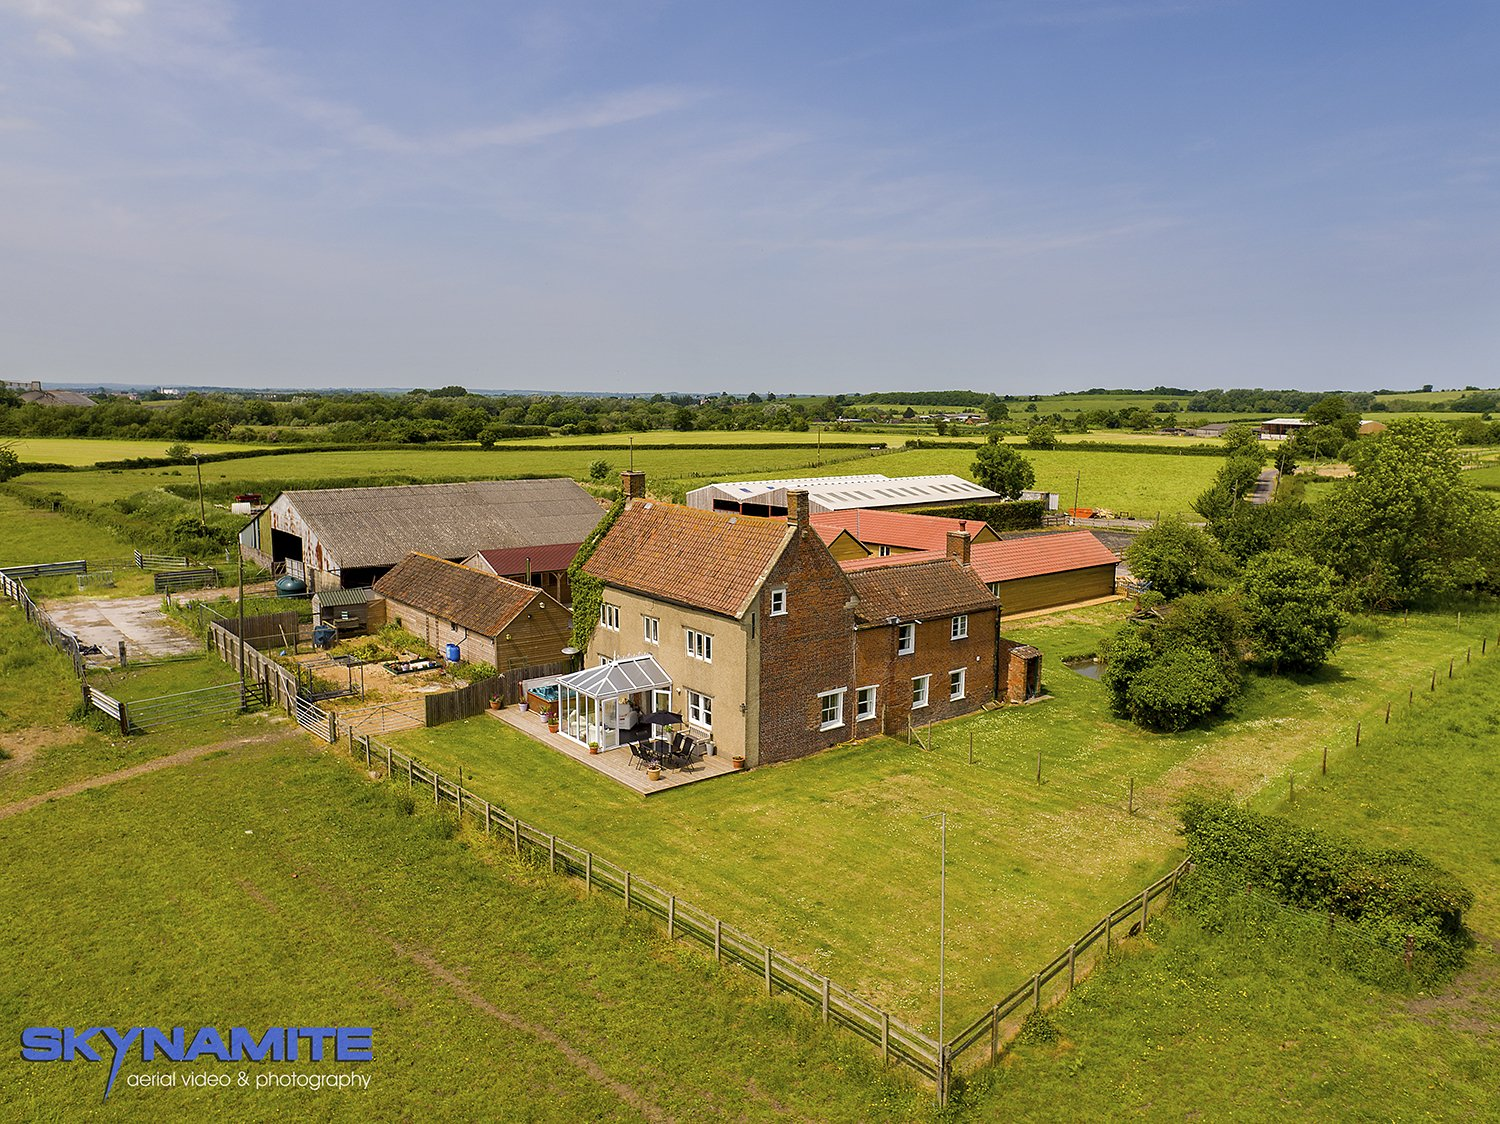 Aerial picture of a Wiltshire farm house